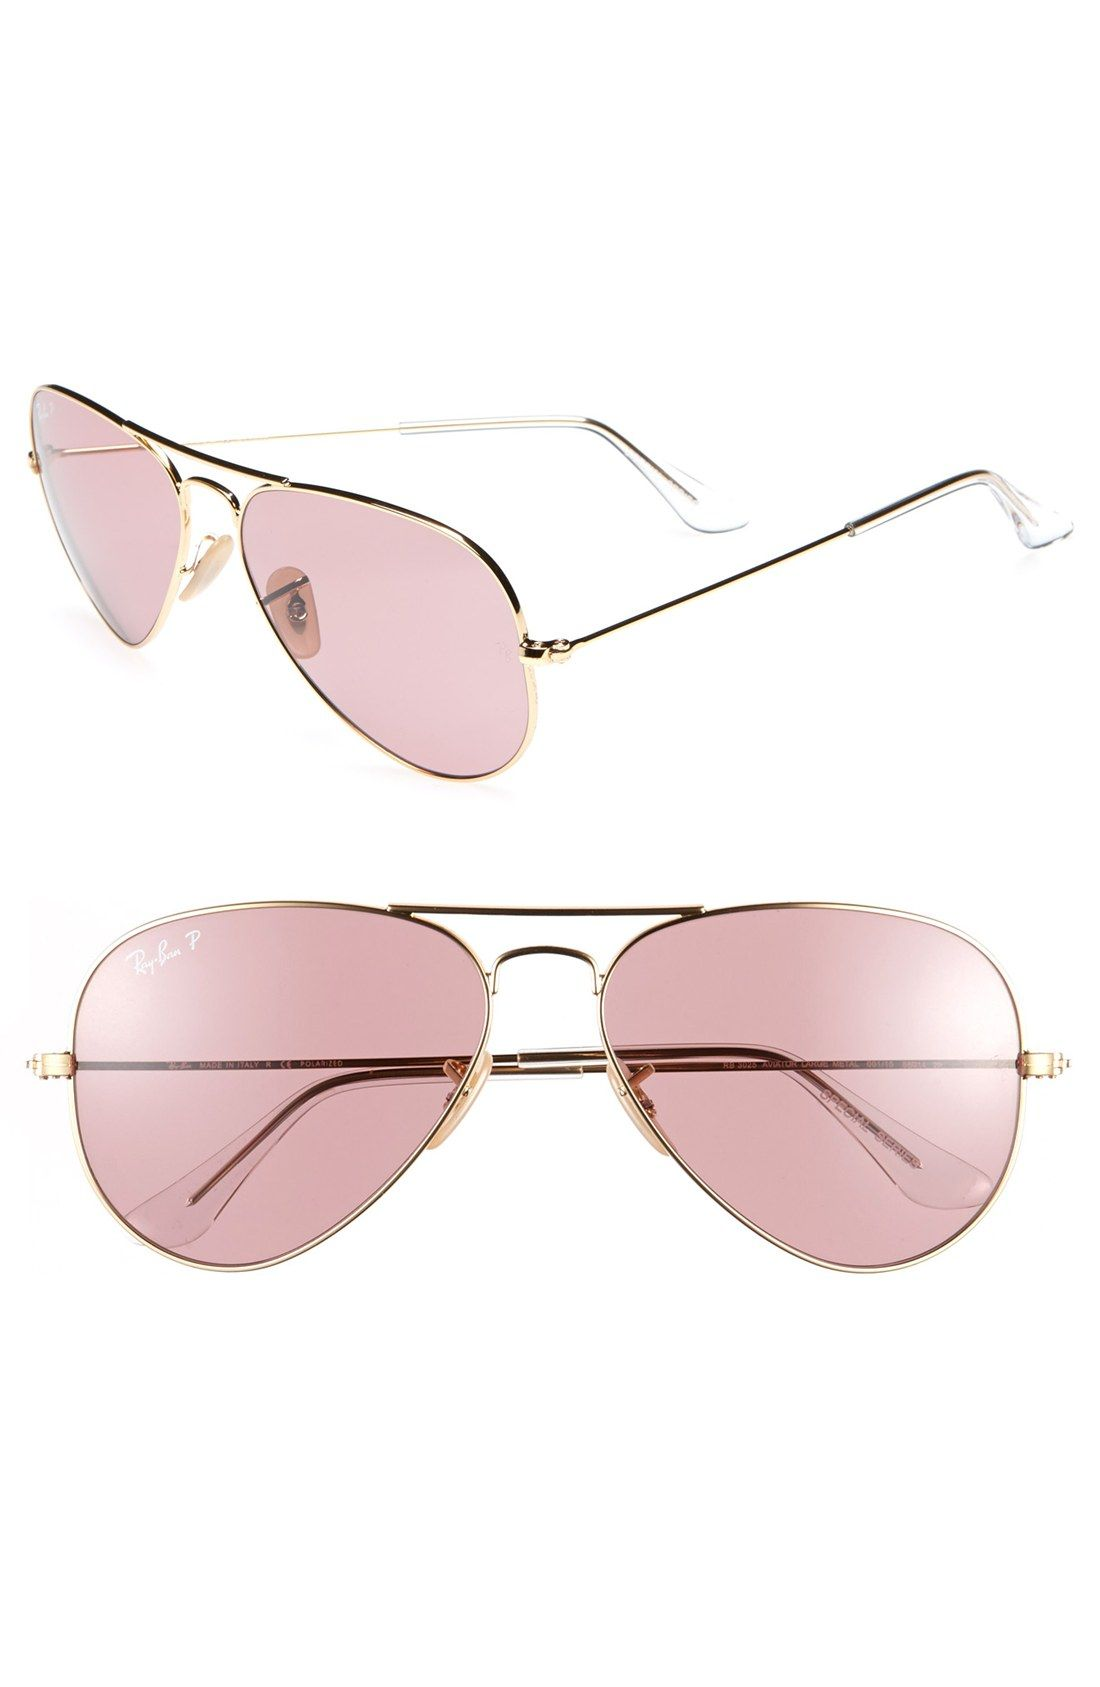 9cfaa140eca These pink polarized Ray-Bans offer style and full UV protection ...